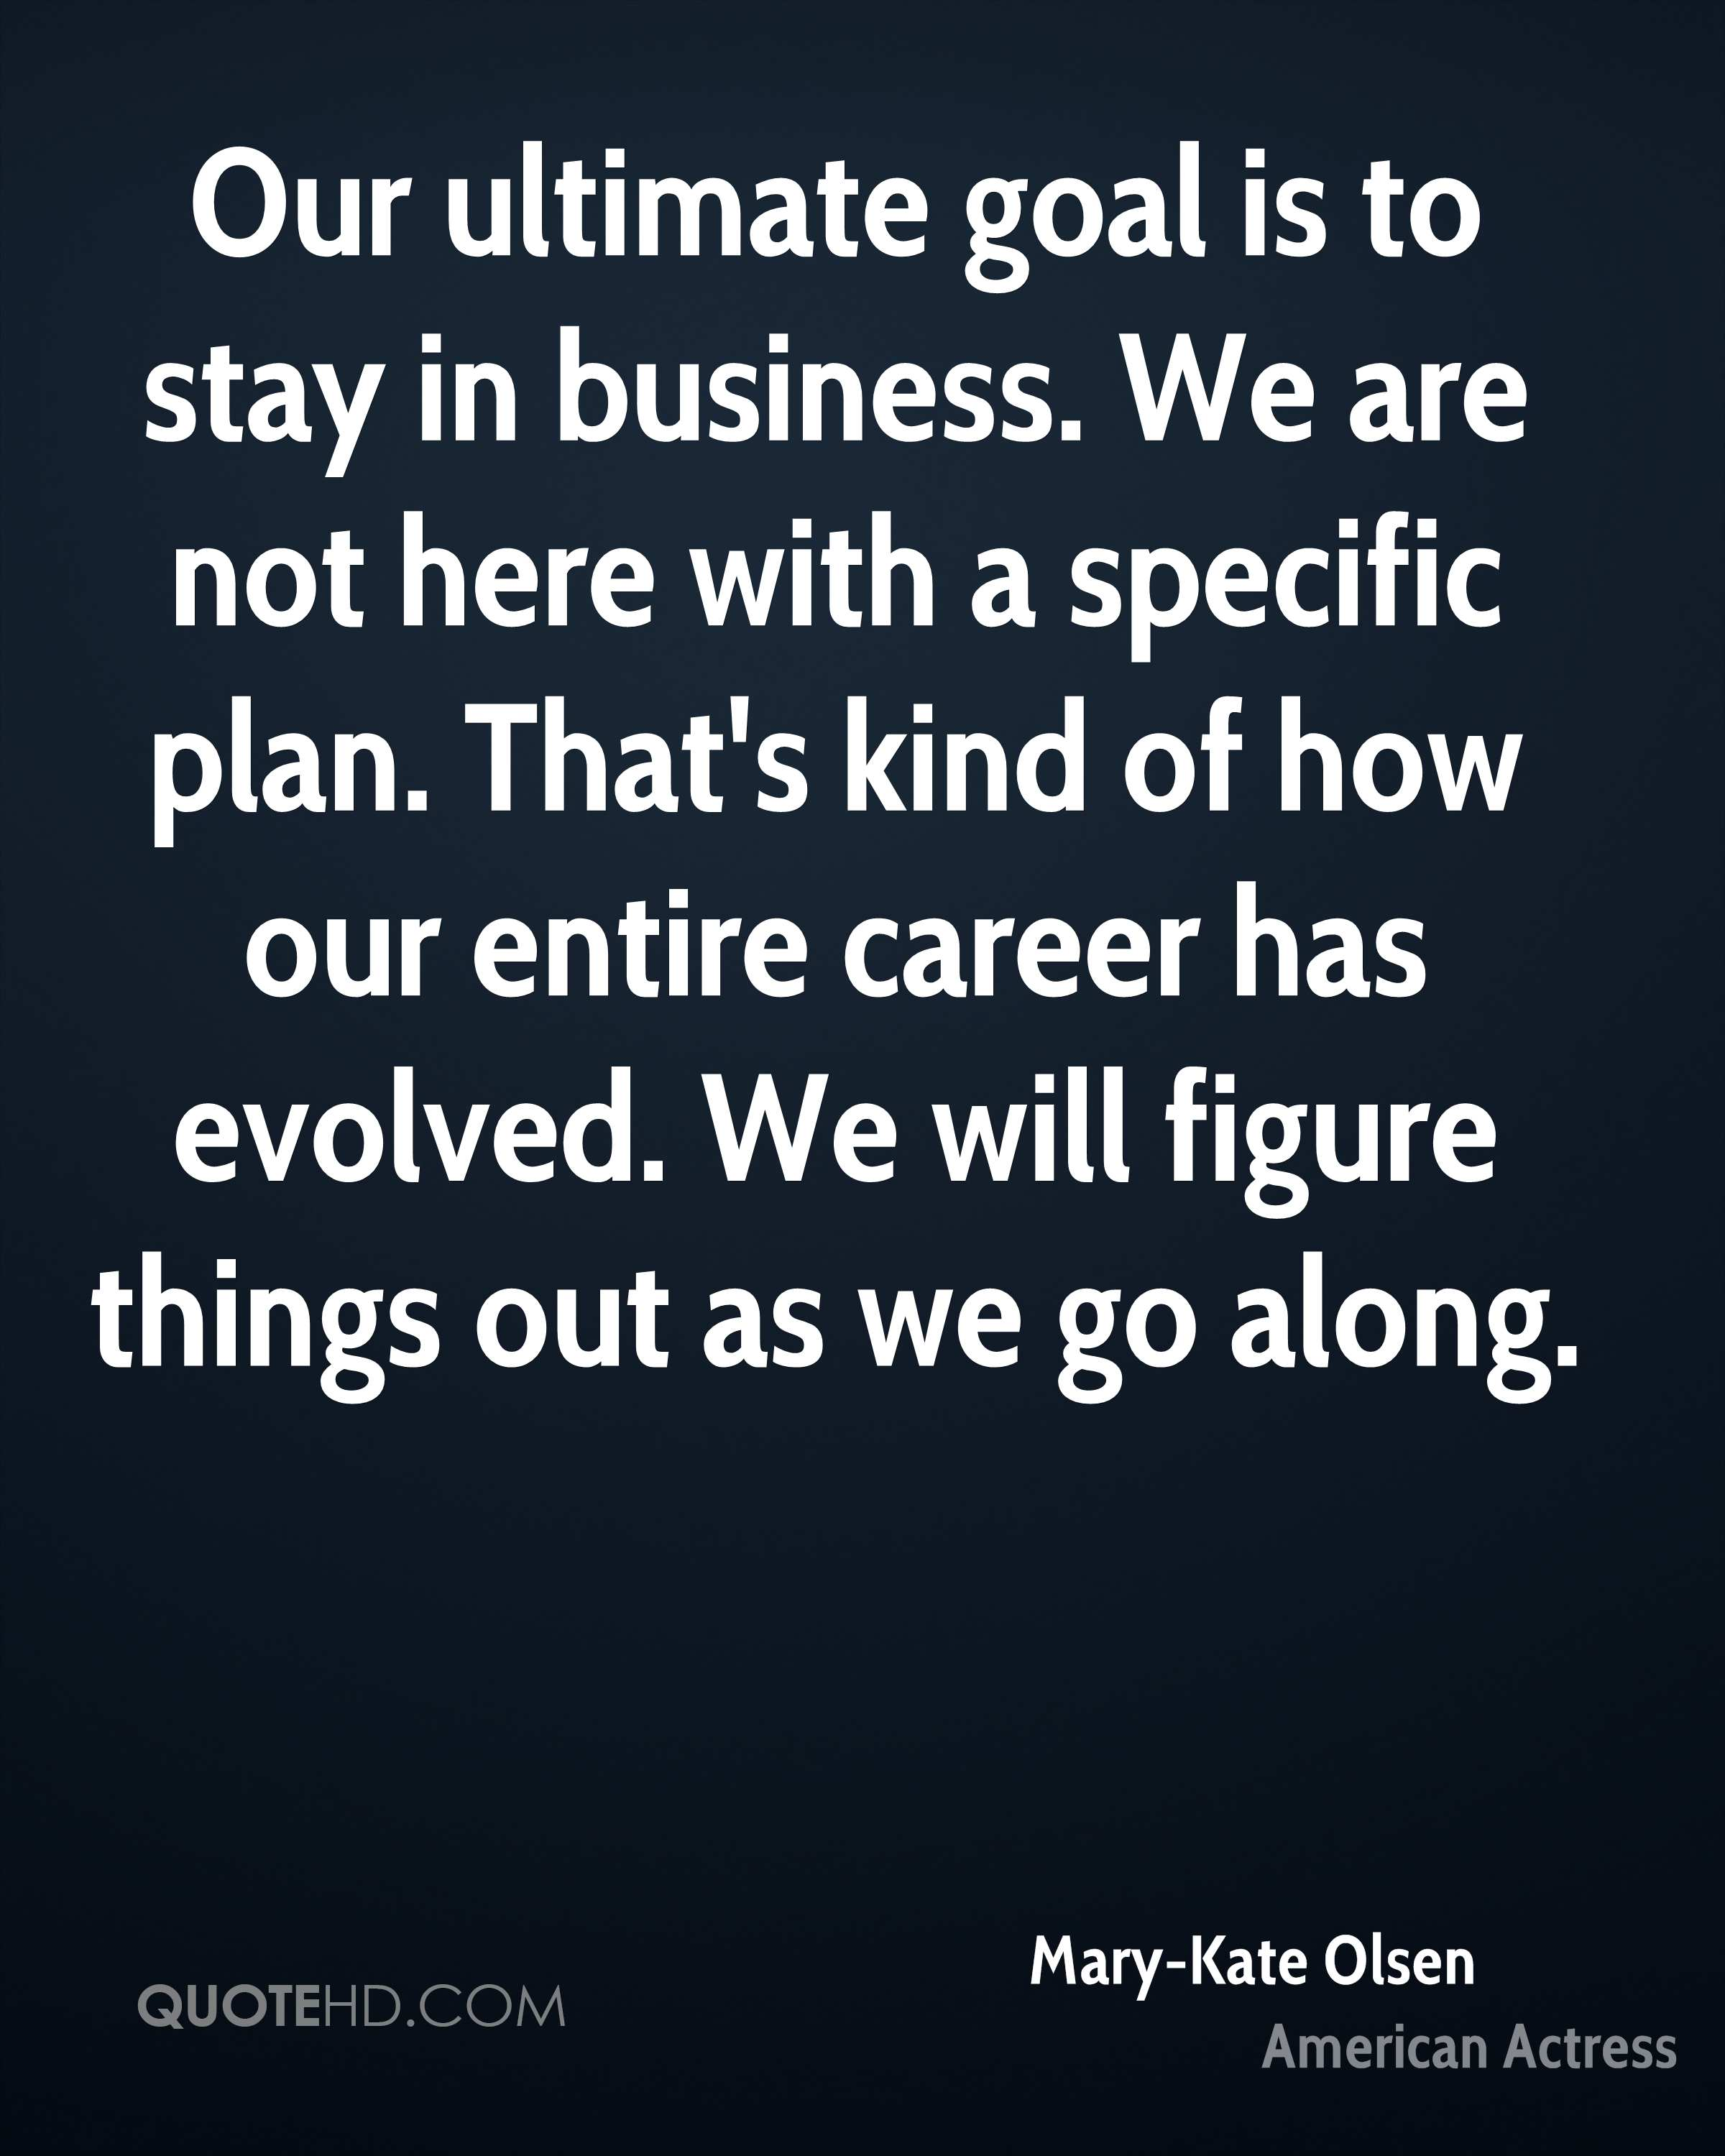 Our ultimate goal is to stay in business. We are not here with a specific plan. That's kind of how our entire career has evolved. We will figure things out as we go along.